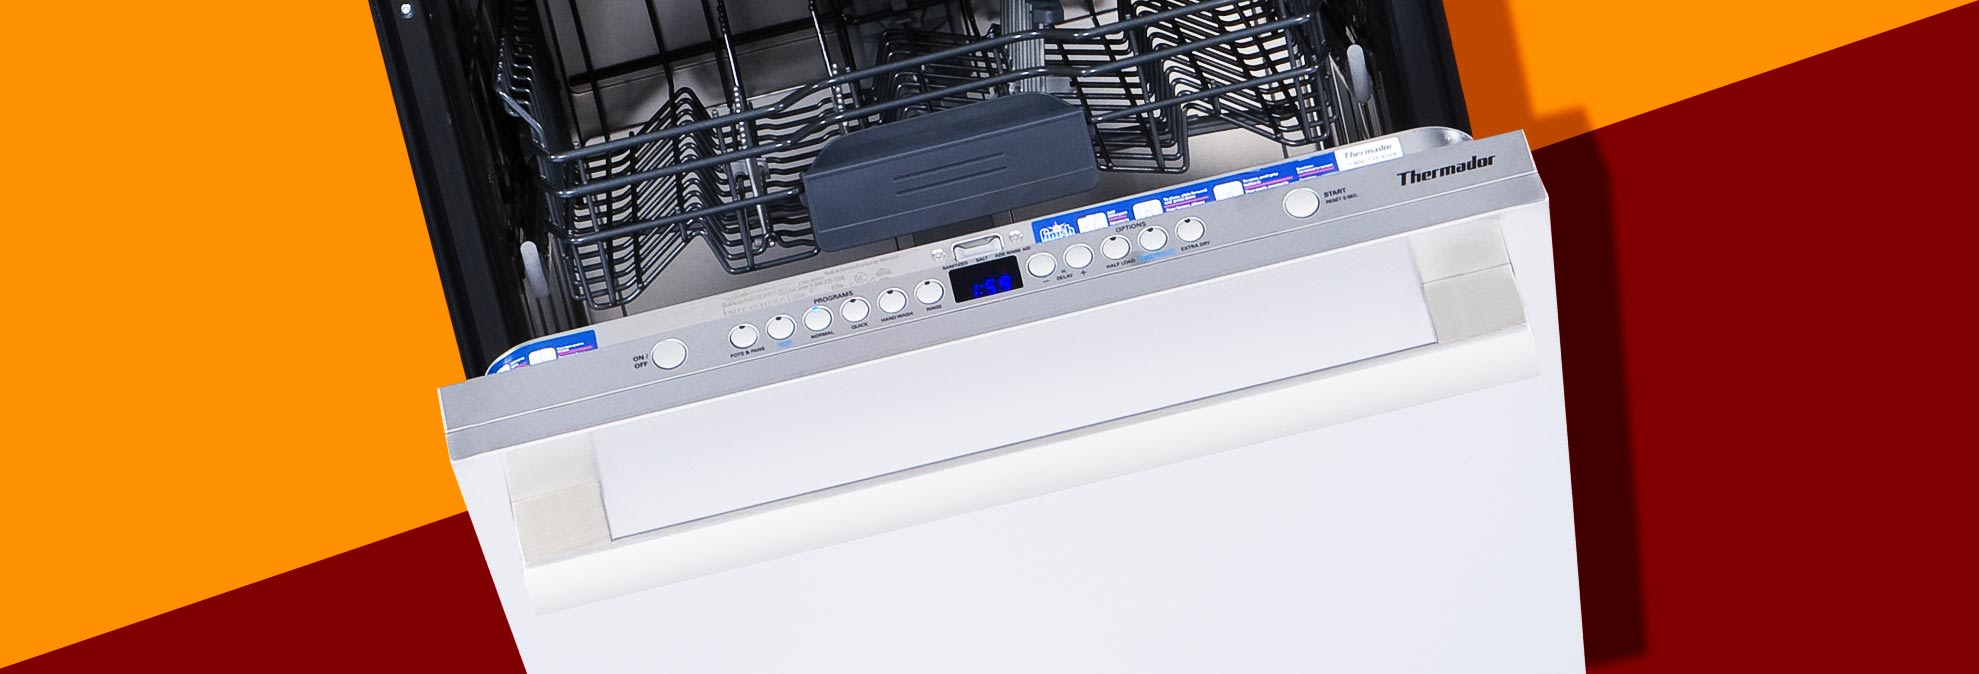 consumer reports dishwashers maker of bosch expands dishwasher recall to 663 000 models 31400